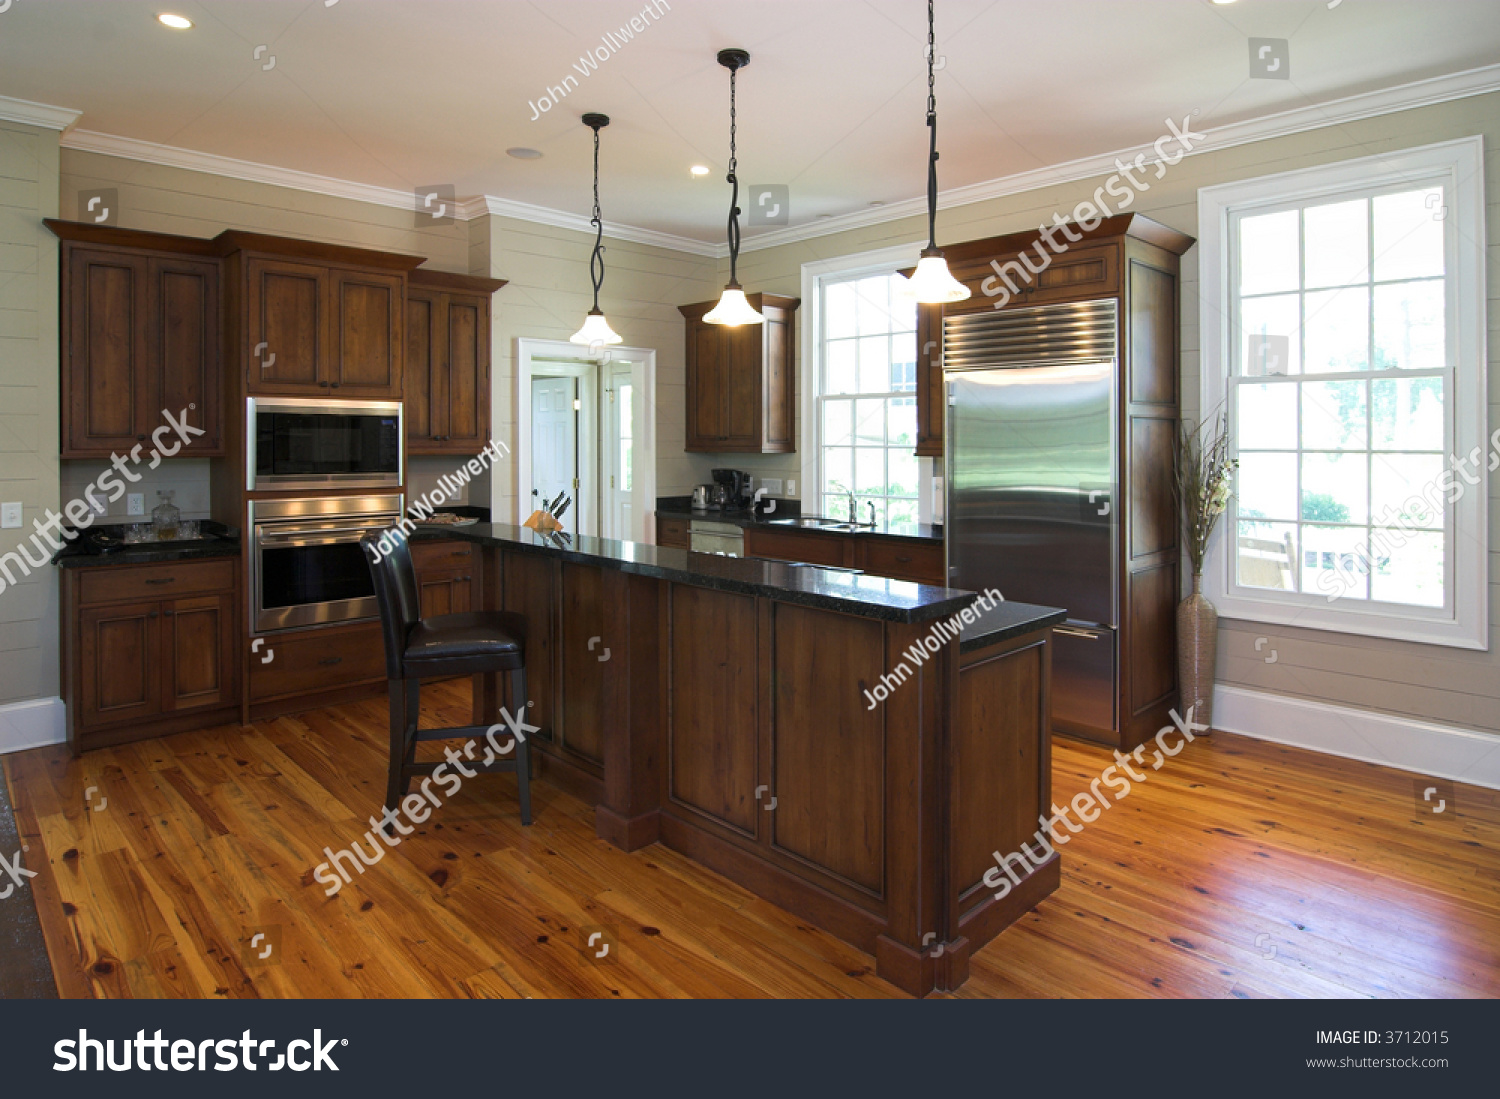 Luxury Kitchen Flooring Luxury Kitchen In Affluent Home With Heart Pine Floors And Granite